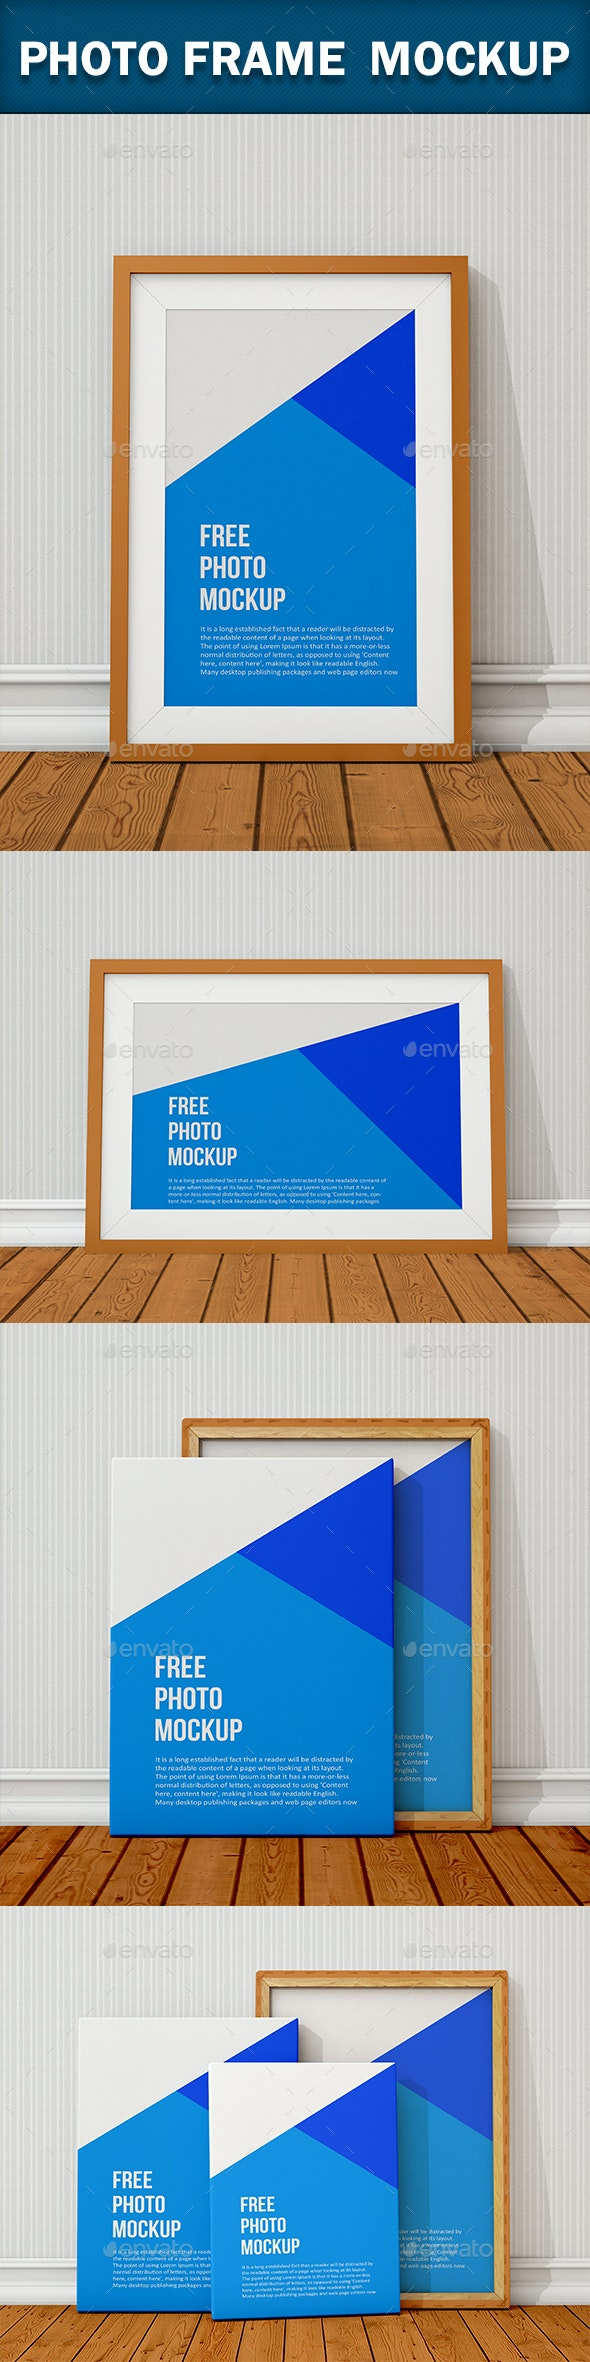 Photo Frame Mockup - Product Mock-Ups Graphics